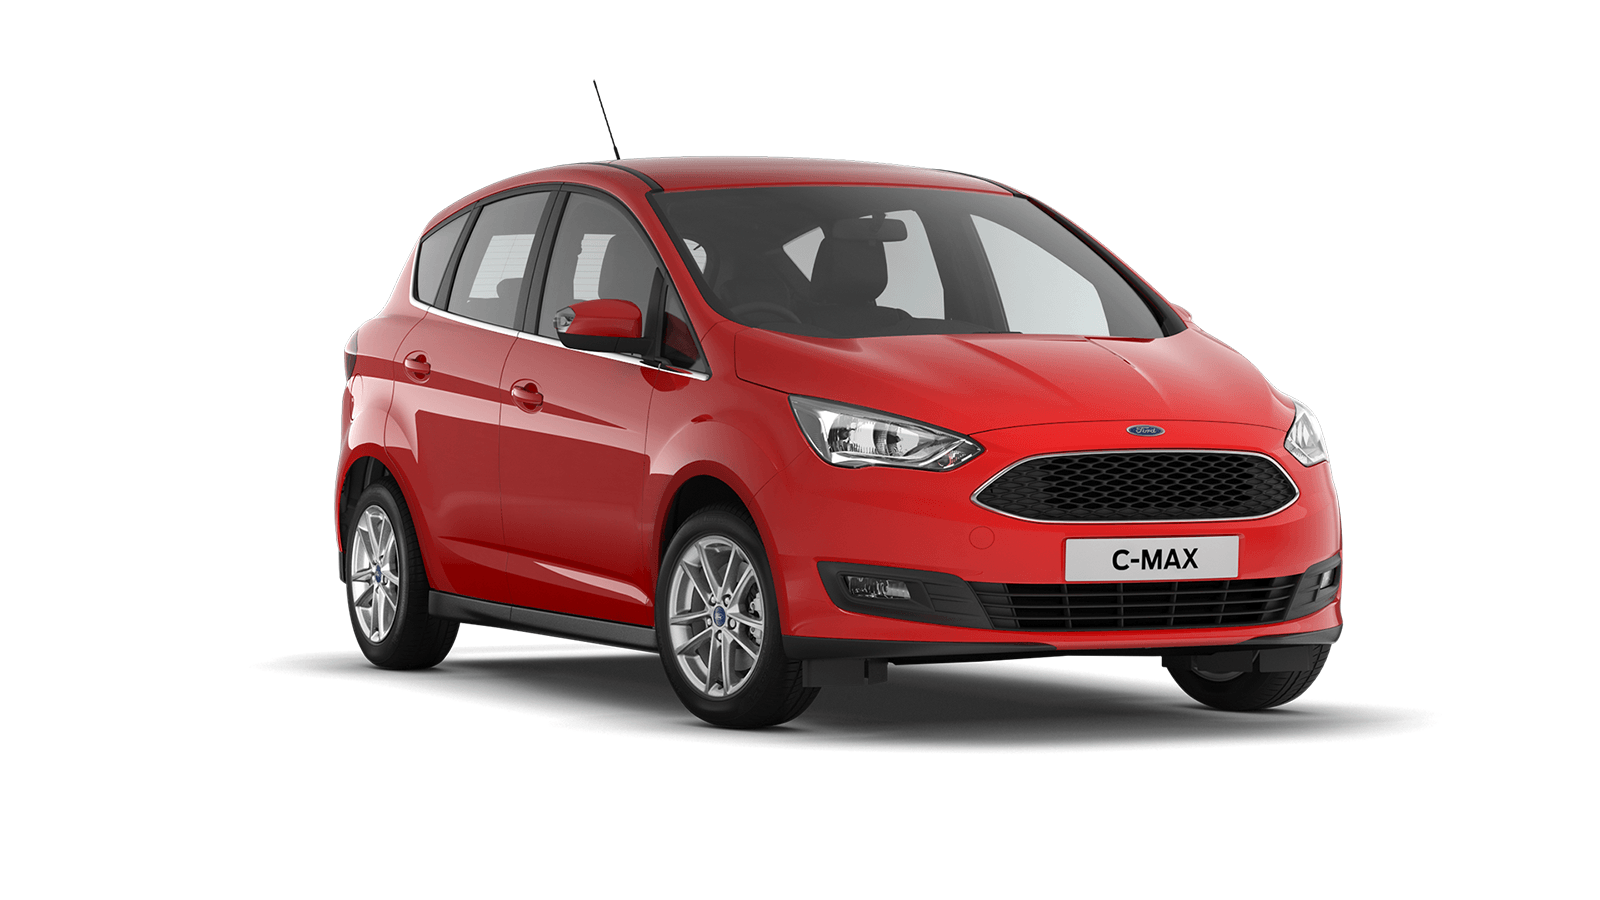 New Ford C-MAX at Tremont Garage